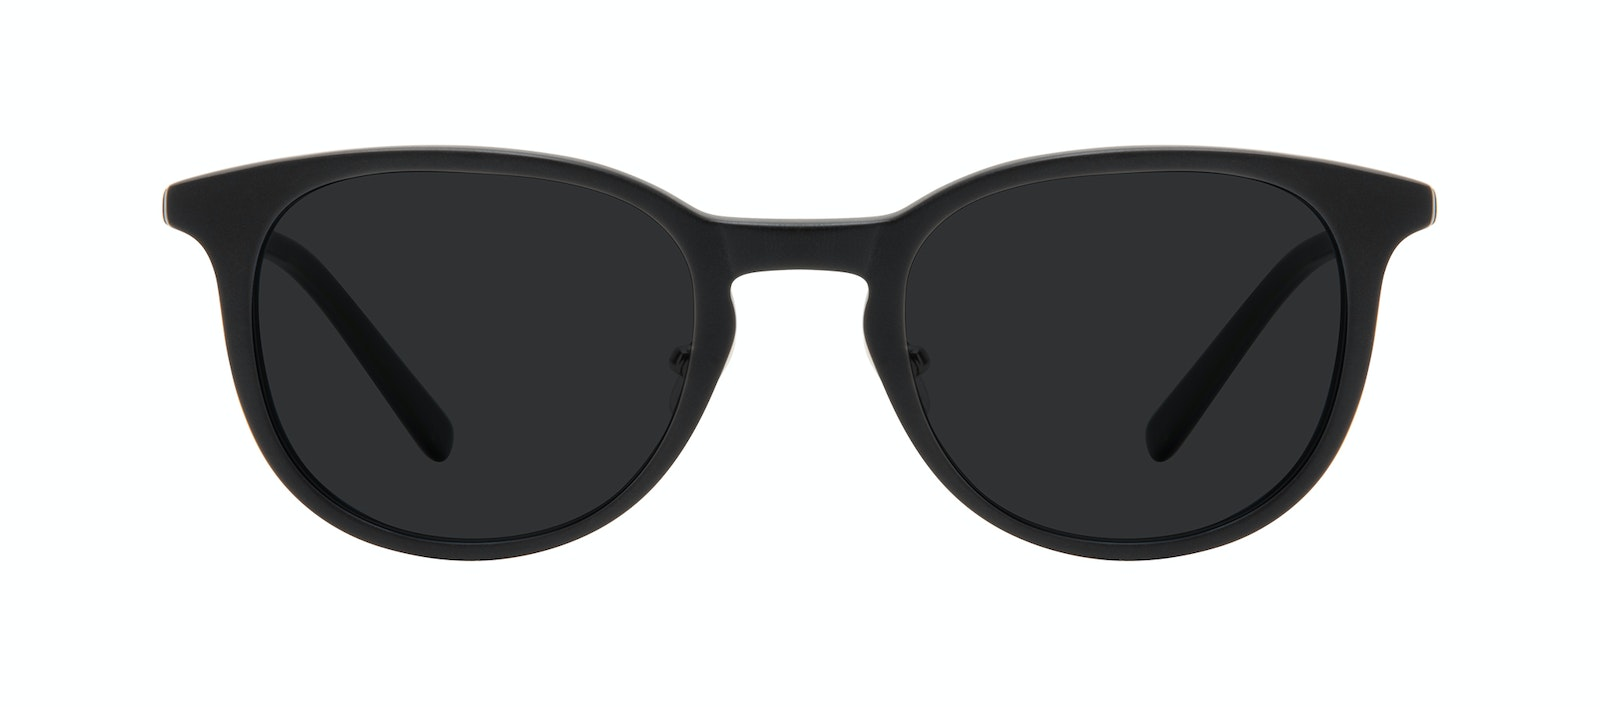 Affordable Fashion Glasses Round Sunglasses Men Coast Onyx Matte Front